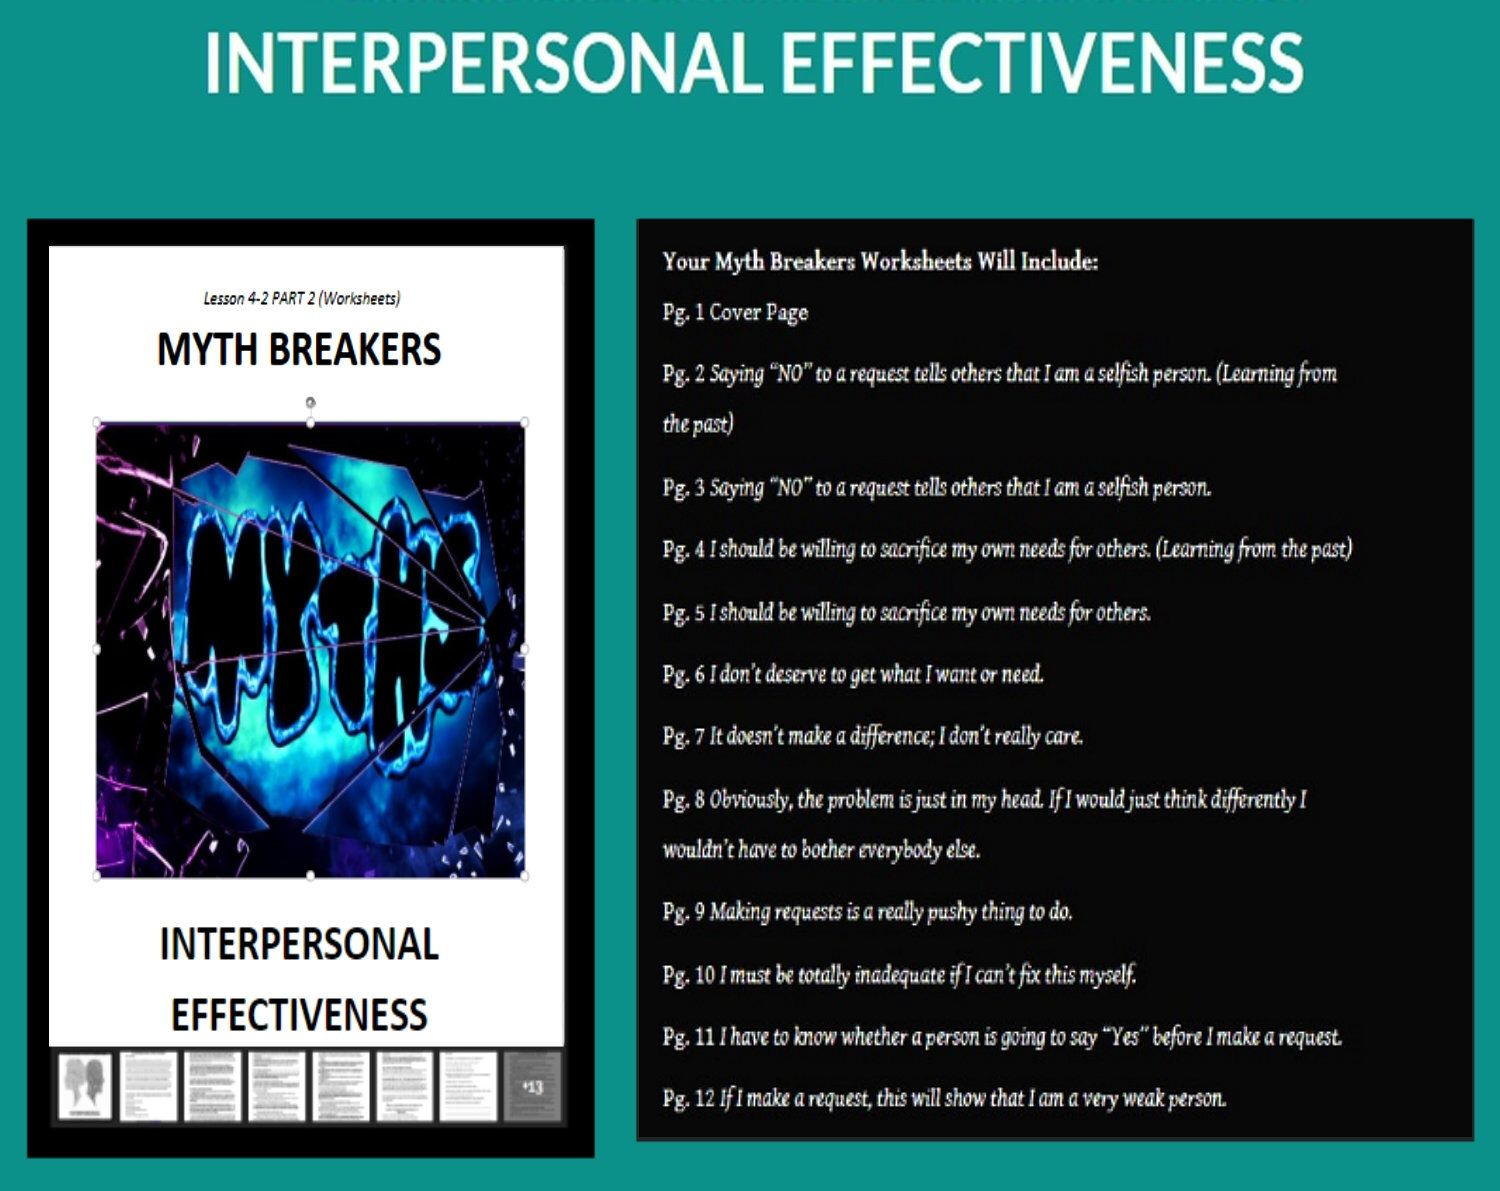 Dbt Lesson 4 2 Pt 2 Interpersonal Effectiveness Myth